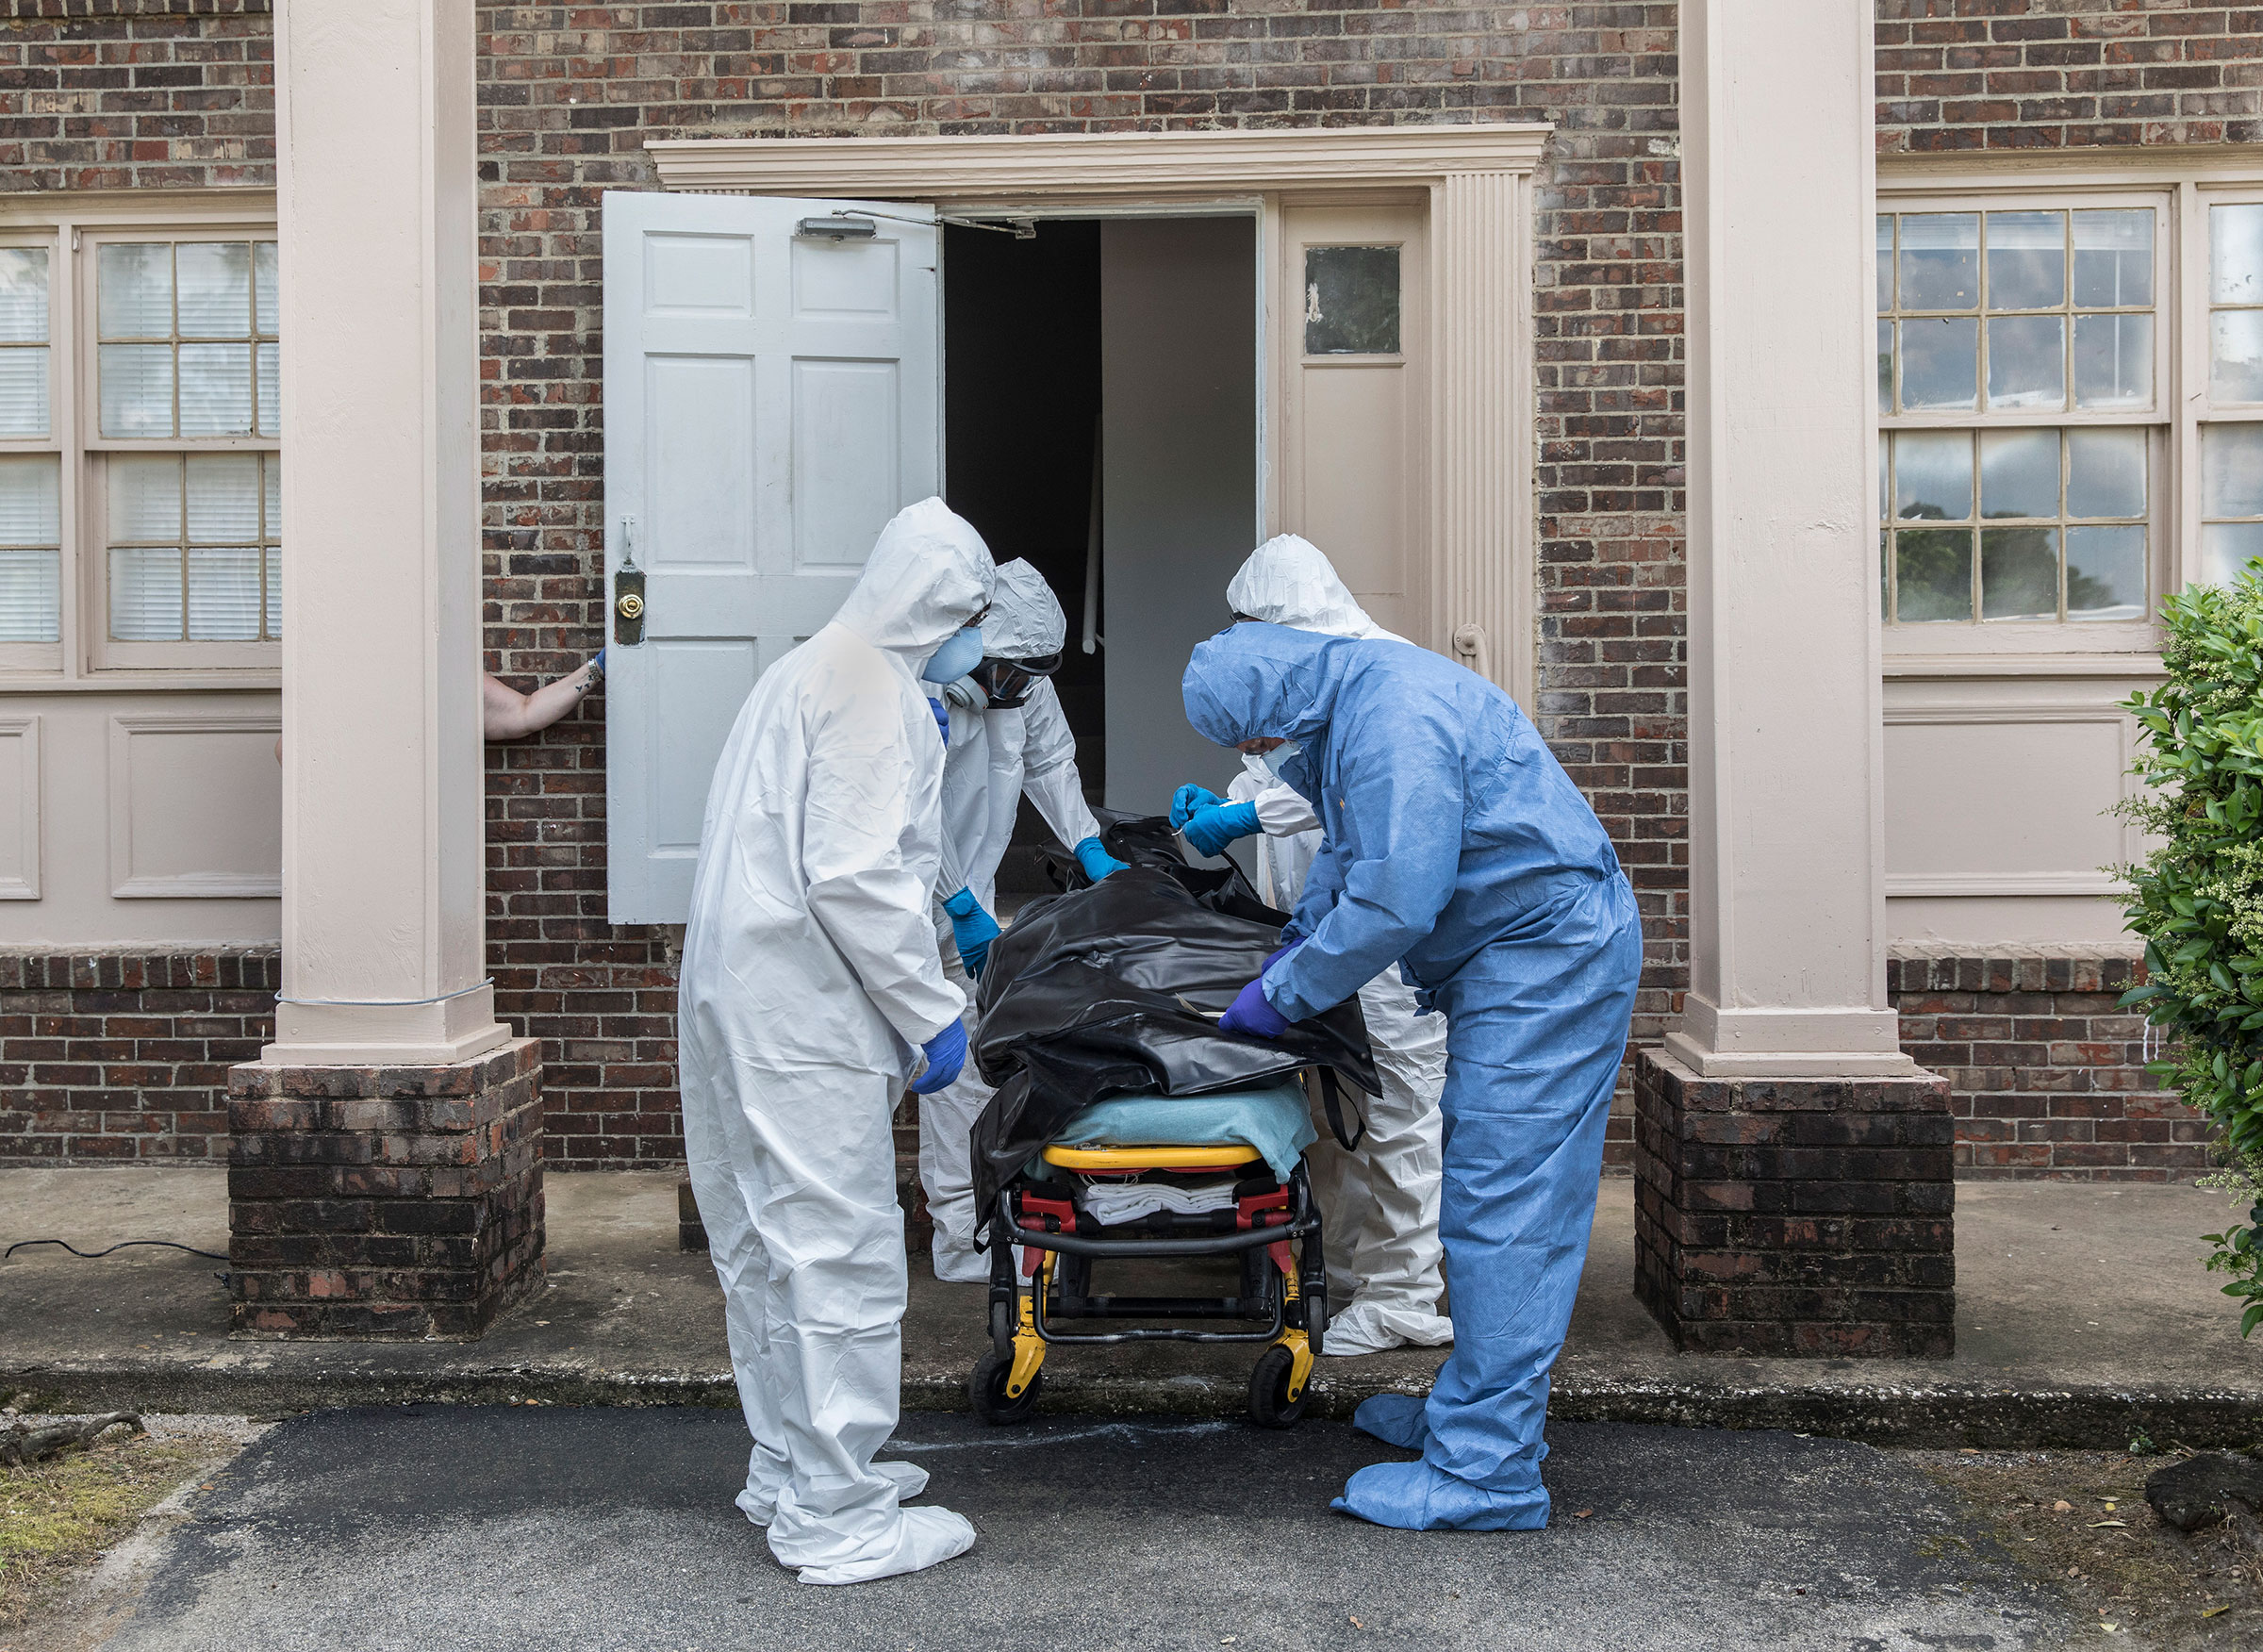 Michael Fowler, a coroner in Dougherty County, Ga., responds to a resident found dead alone in his apartment.